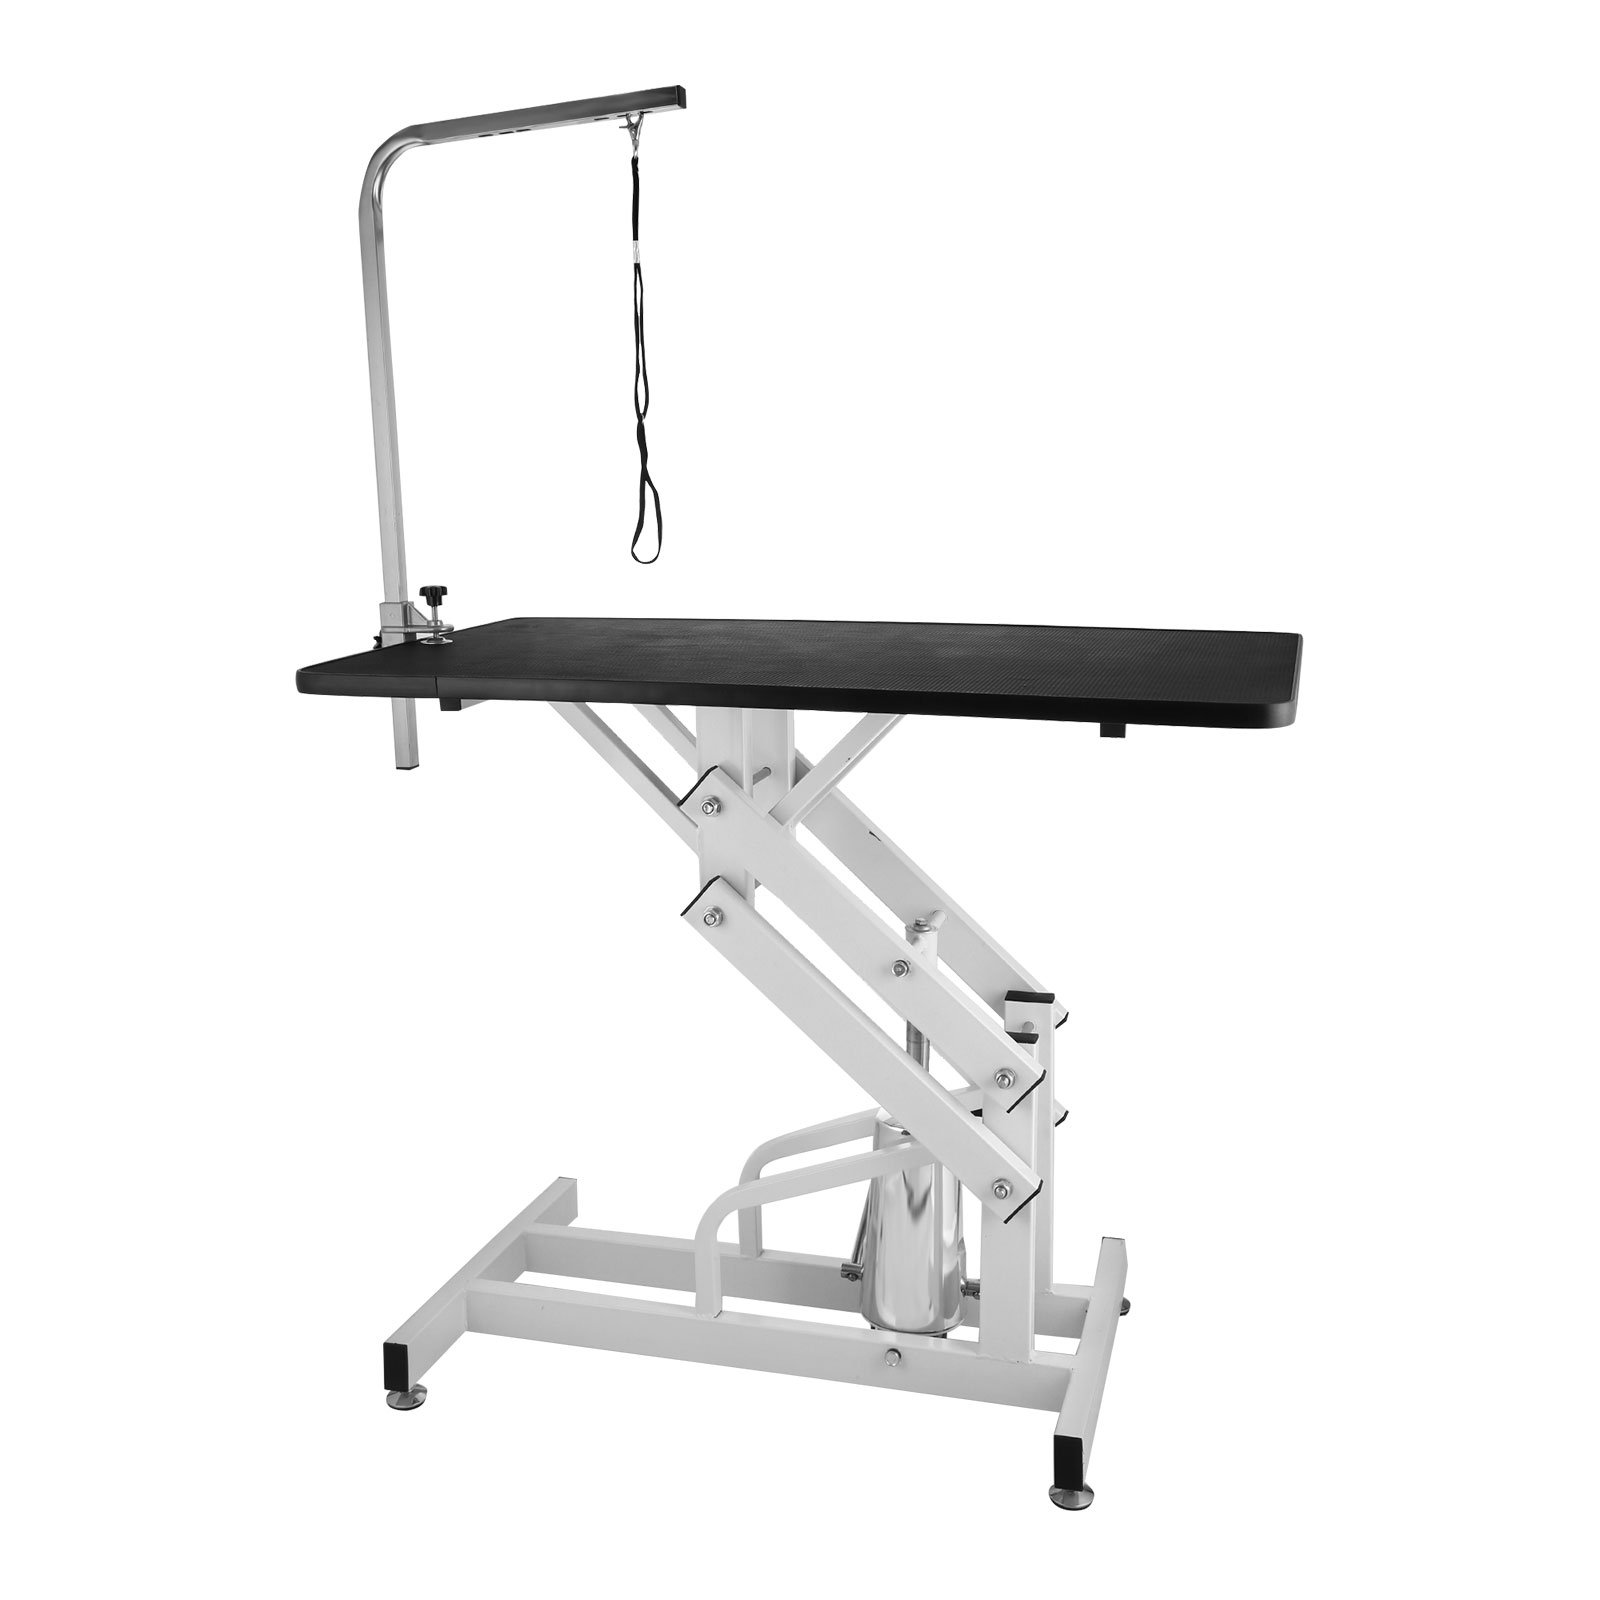 VEVOR 42.5 X 23.6 Inch Dog Grooming Table Z-Lift Hydraulic Grooming Table 330Lbs Weight Capacity Height Adjustable Pet Grooming Table with Adjustable Arm and Noose (Pet Hydraulic Table) by VEVOR